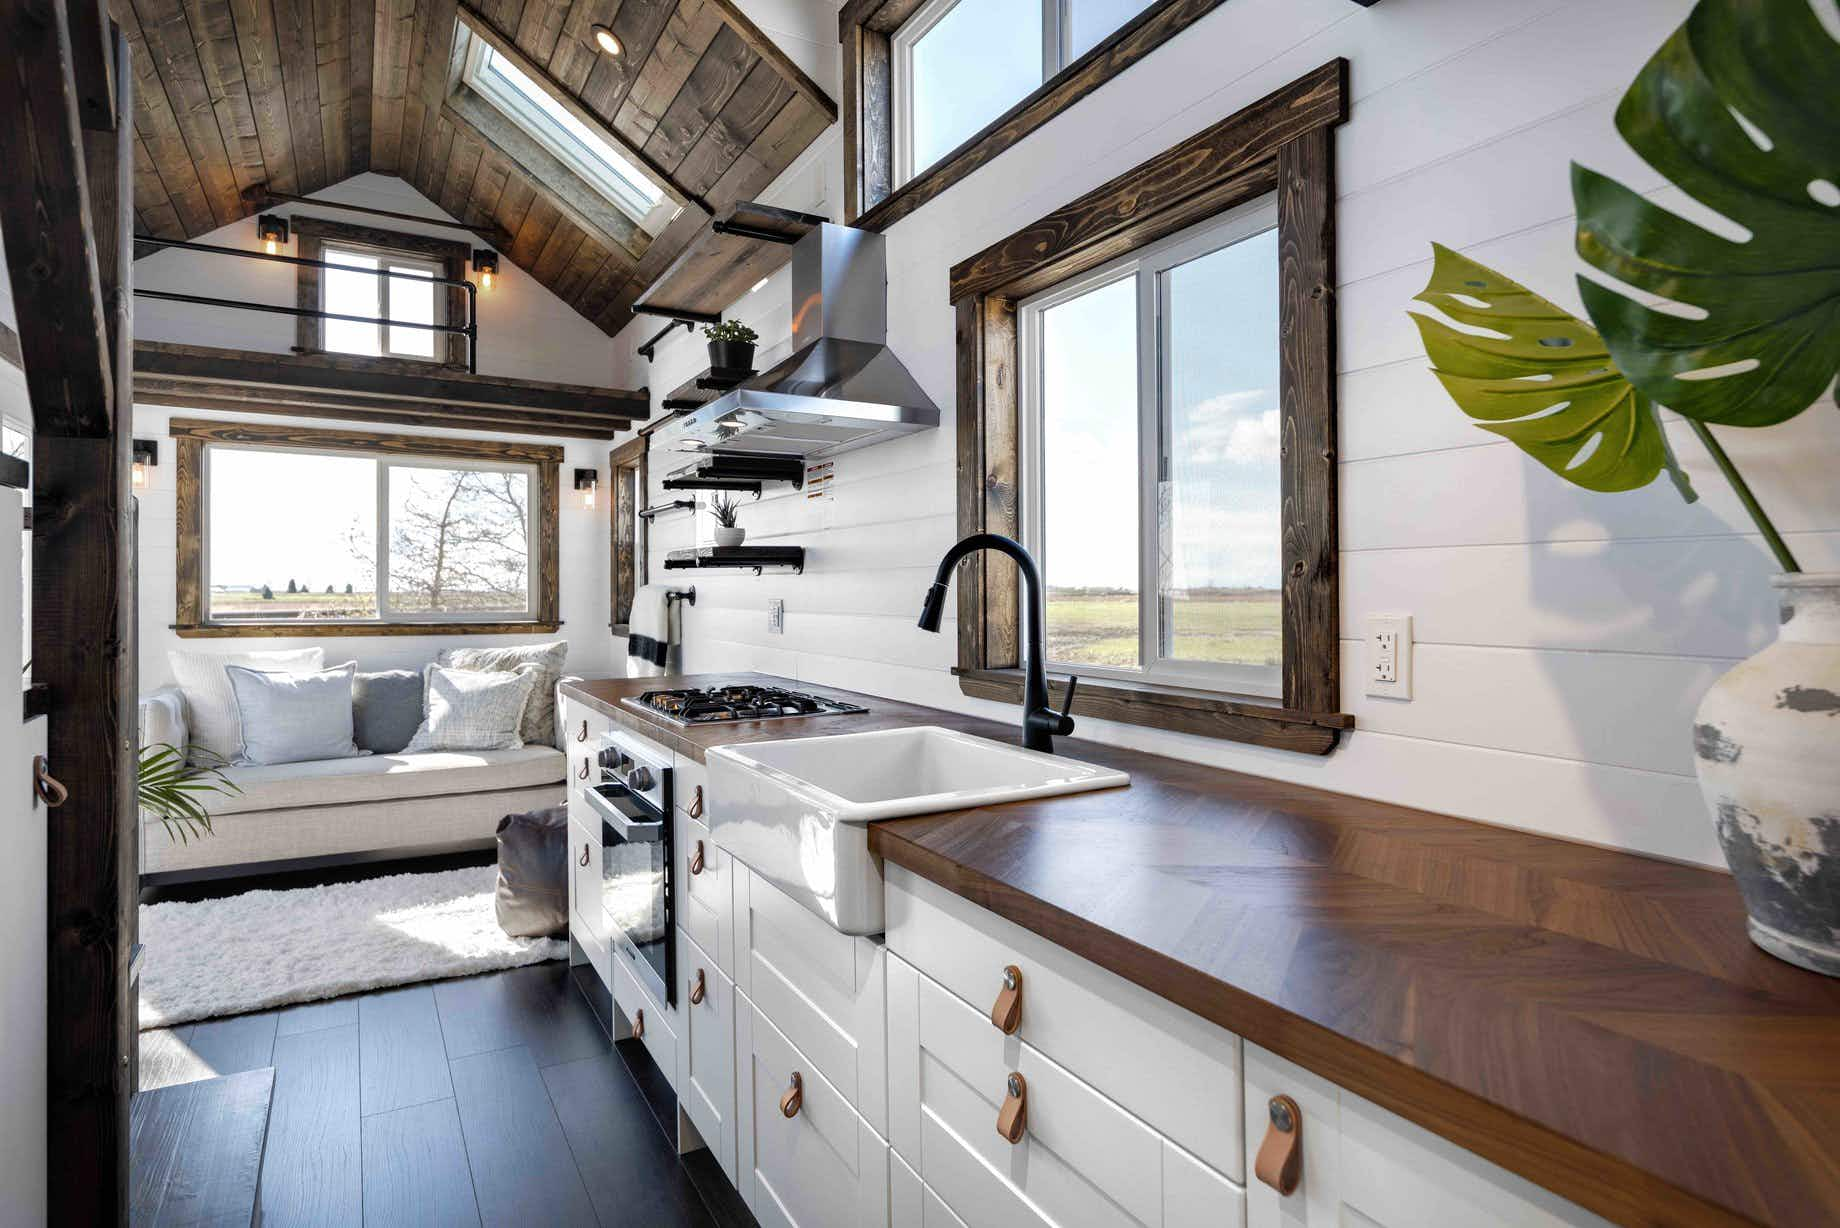 Inside the stylish tiny house that can travel the country with you